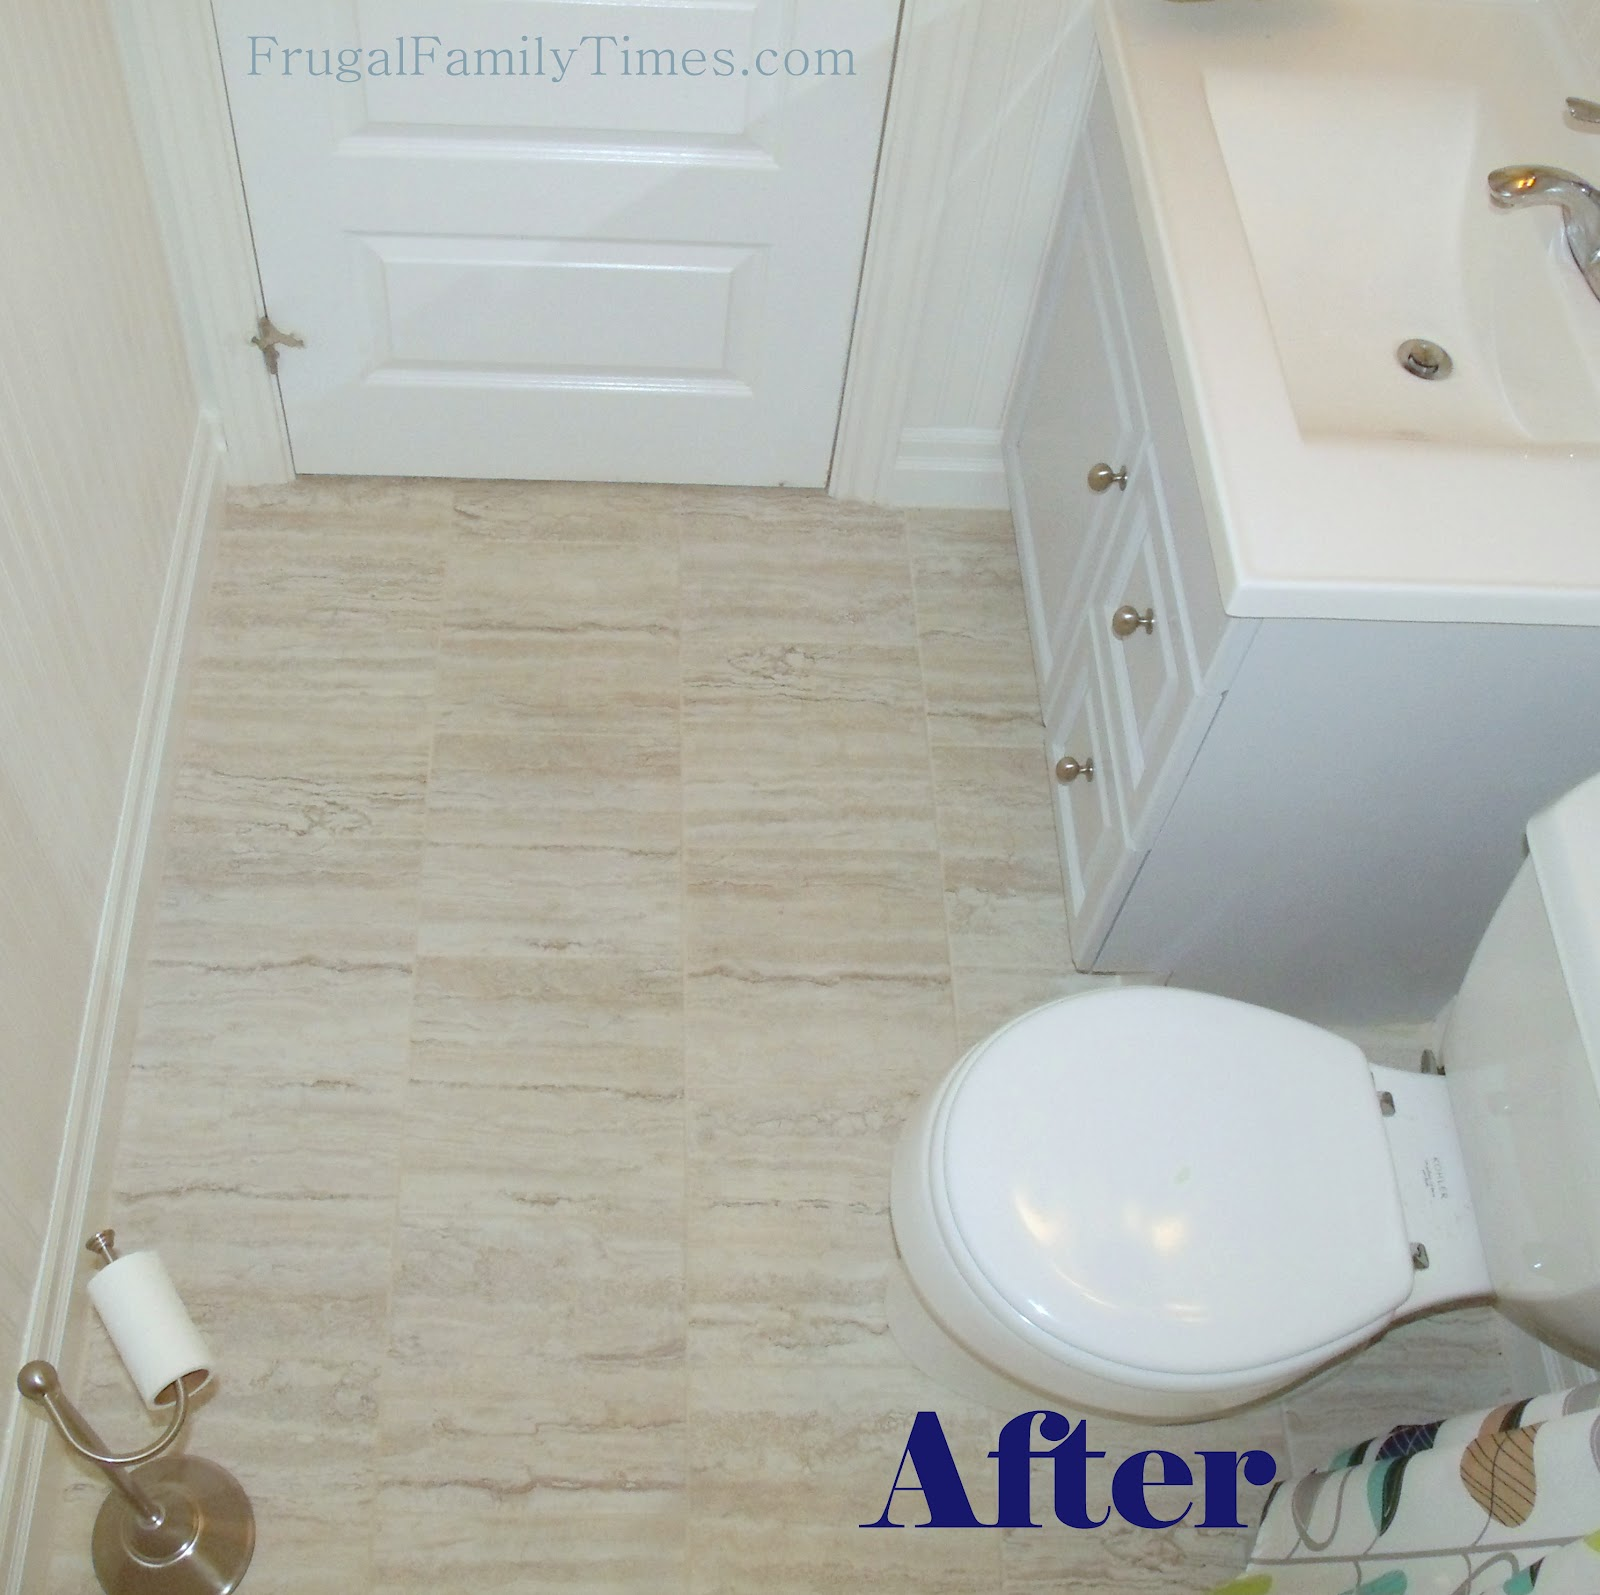 23. Replace Old Flooring With Vinyl Tiles